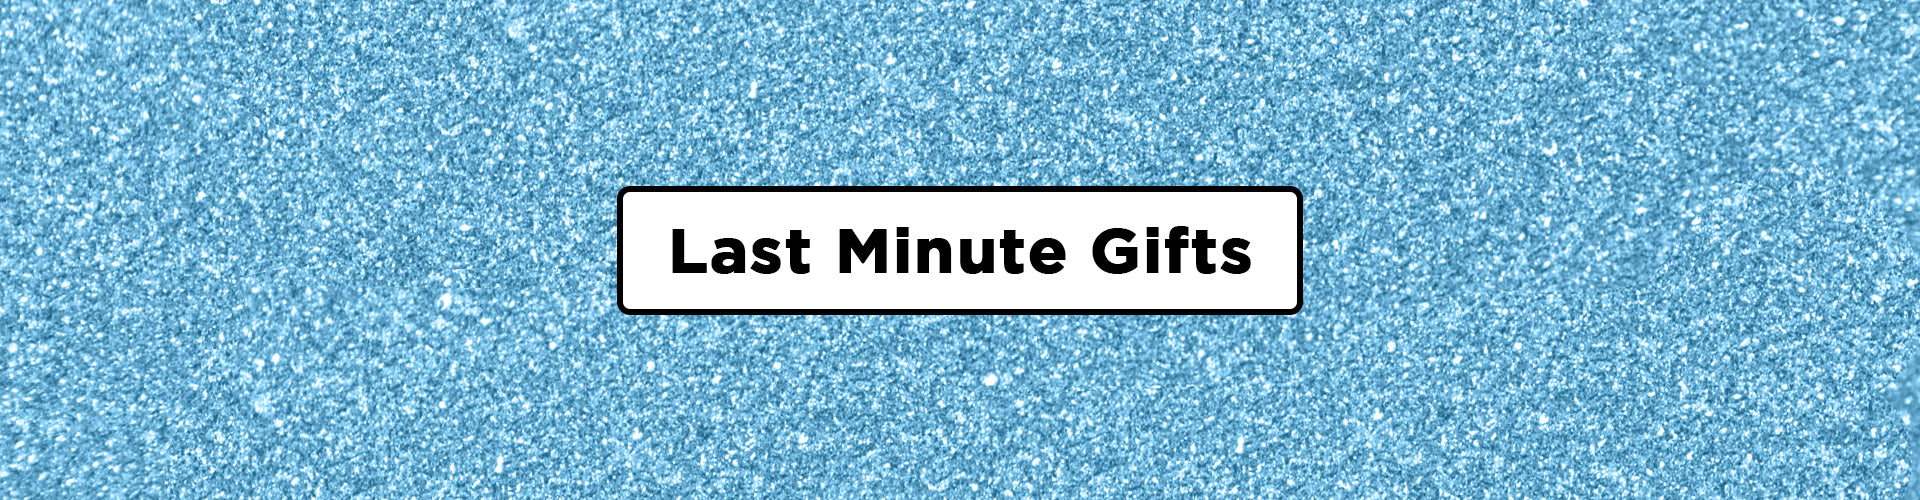 Last minute gifts? Check mate!